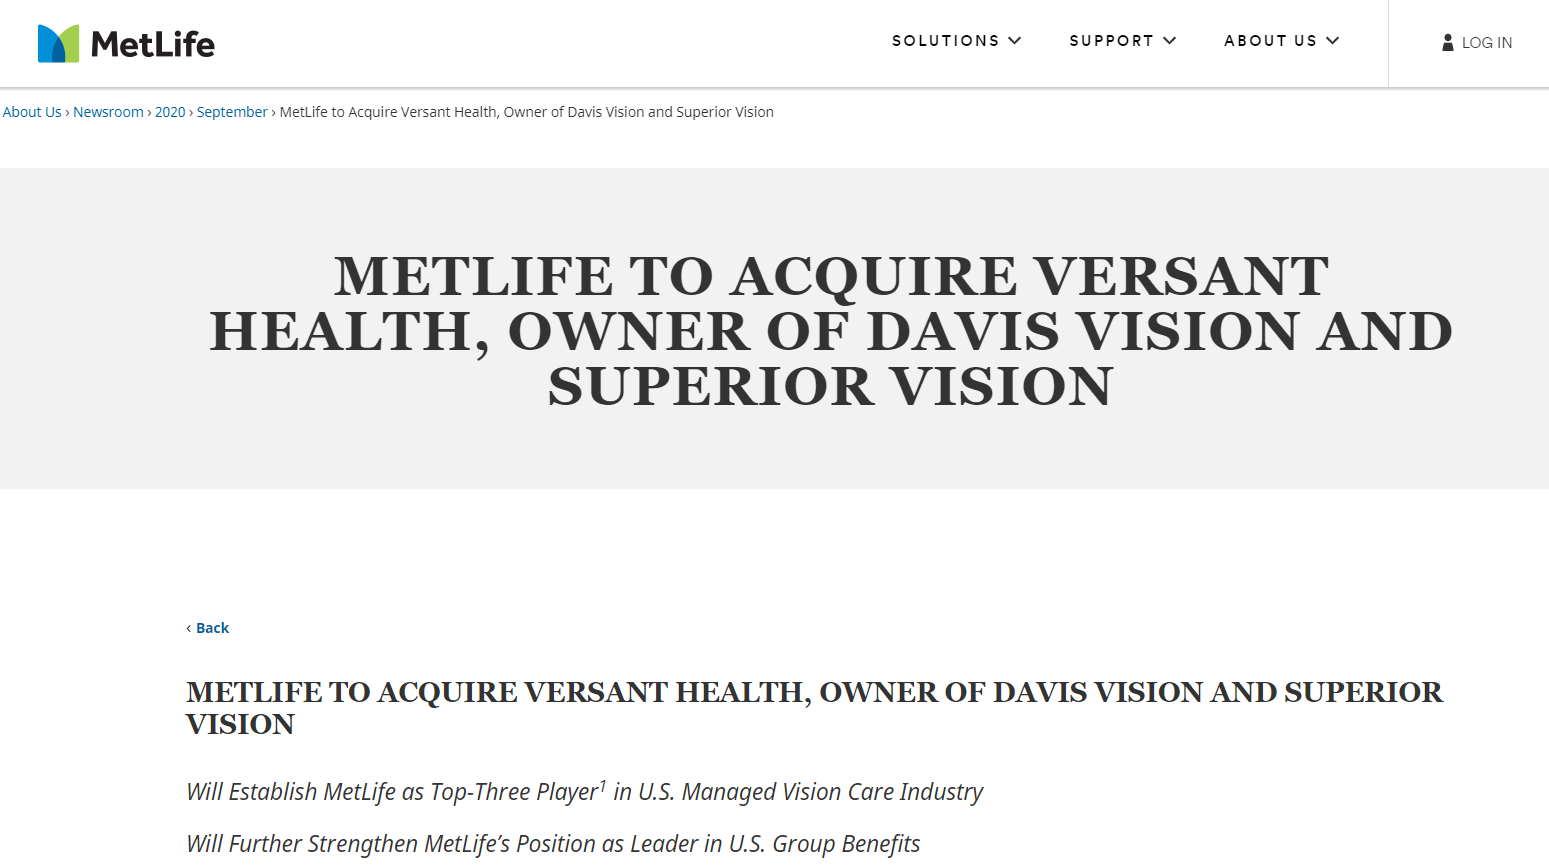 MetLife Completes Acquisition of Versant Health